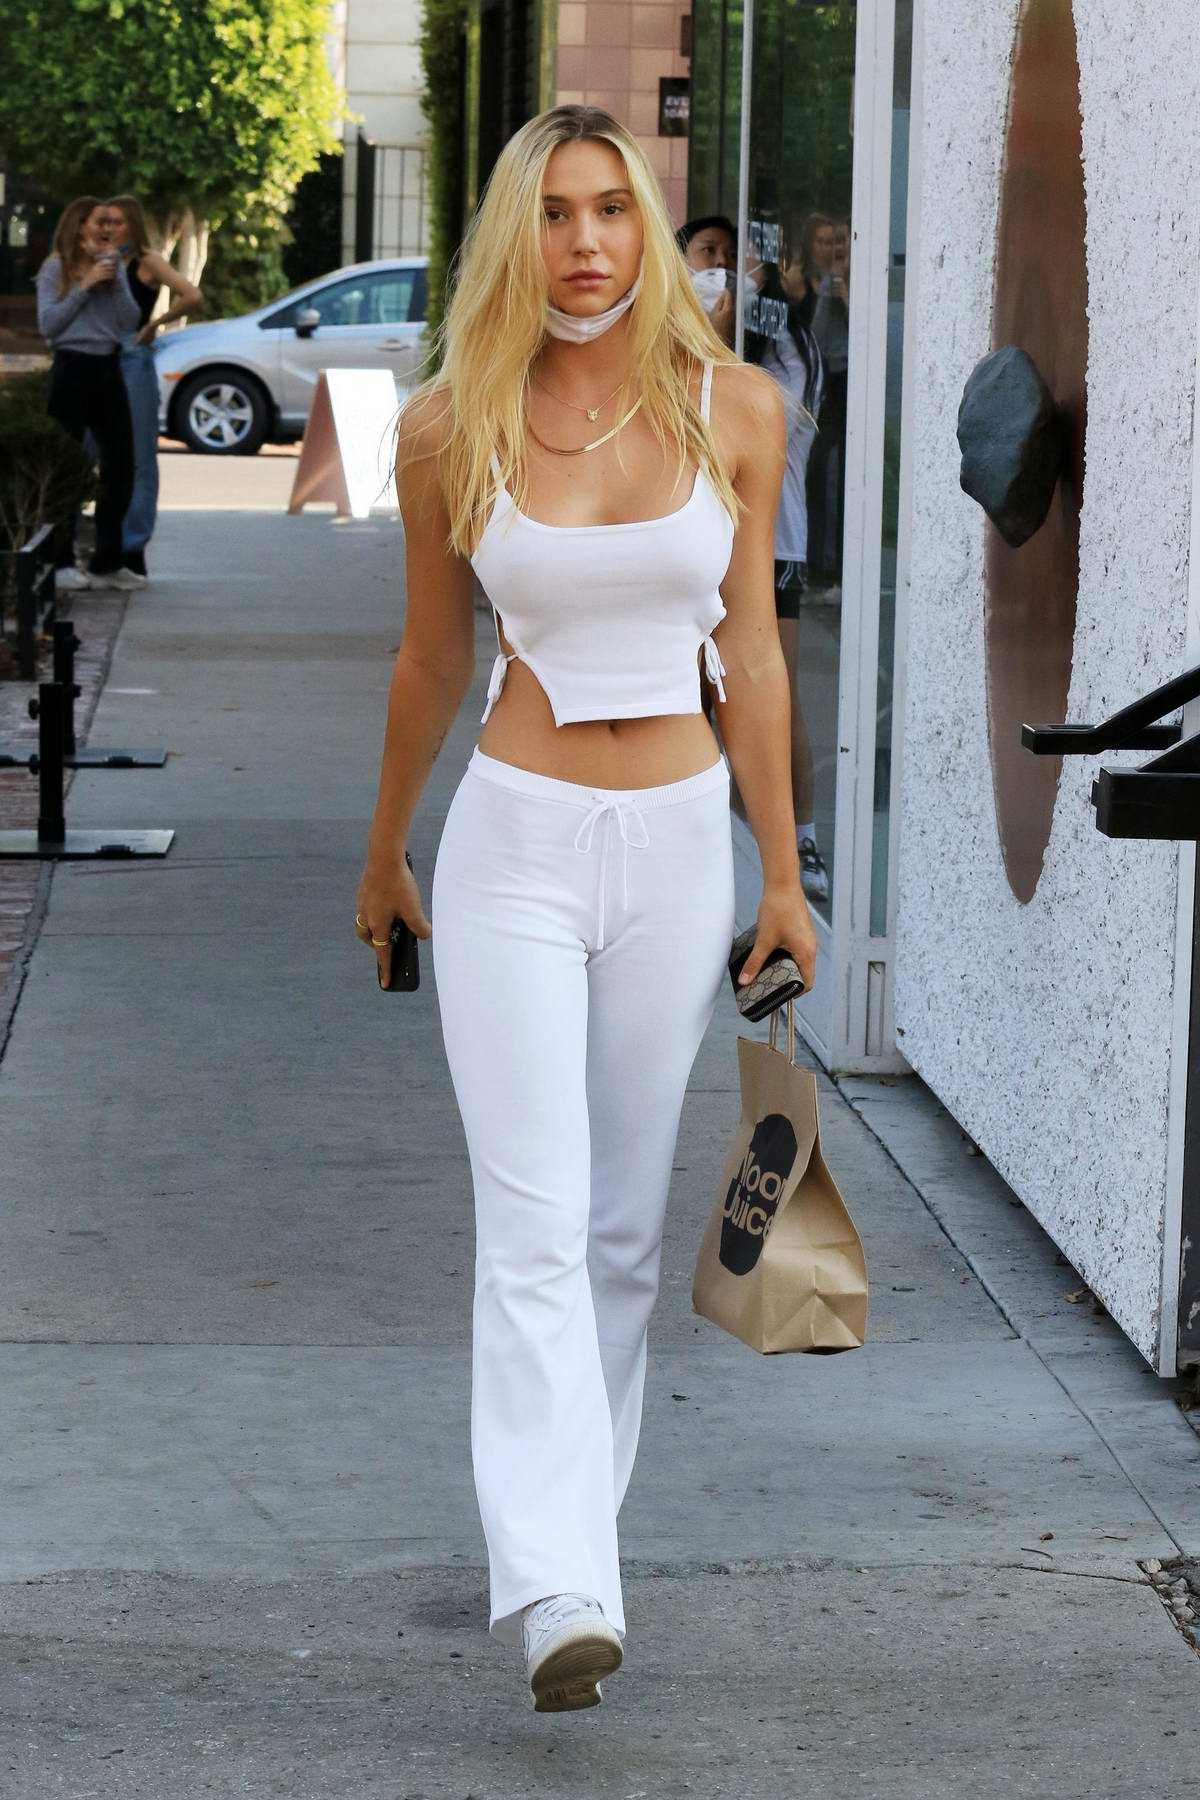 Alexis Ren flaunts her curves in white crop top and tight-fitting pants during a juice run at Moon Juice in Los Angeles